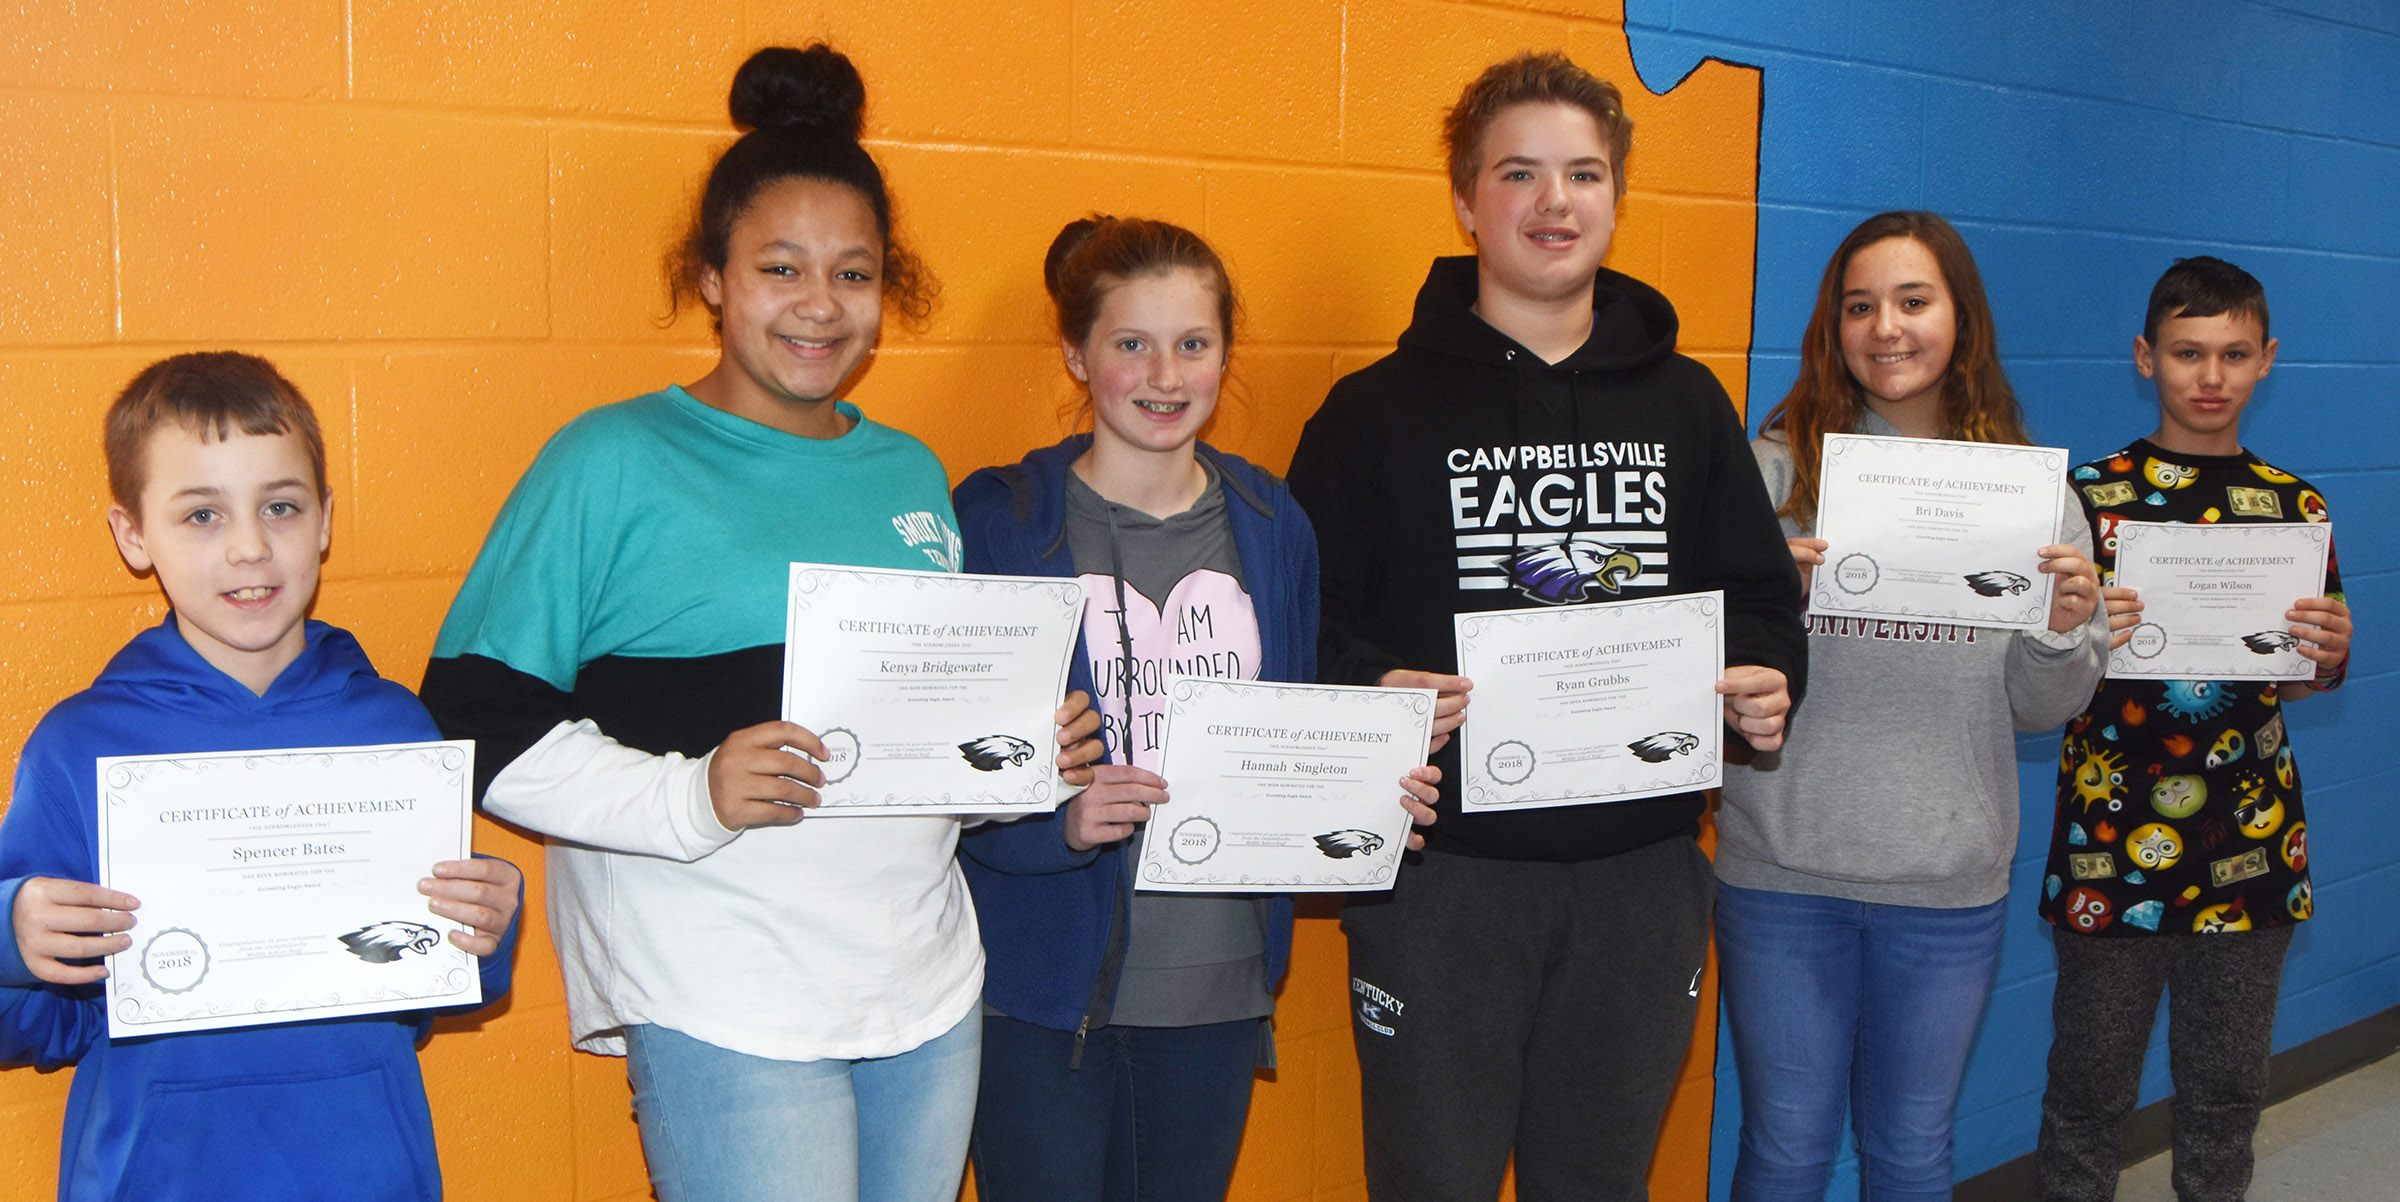 CMS Exceeding Eagles for the week of Nov. 12 are, from left, sixth-graders Spencer Bates and Kenya Bridgewater, seventh-graders Hannah Singleton and Ryan Grubbs and eighth-graders Bri Davis and Logan Wilson.